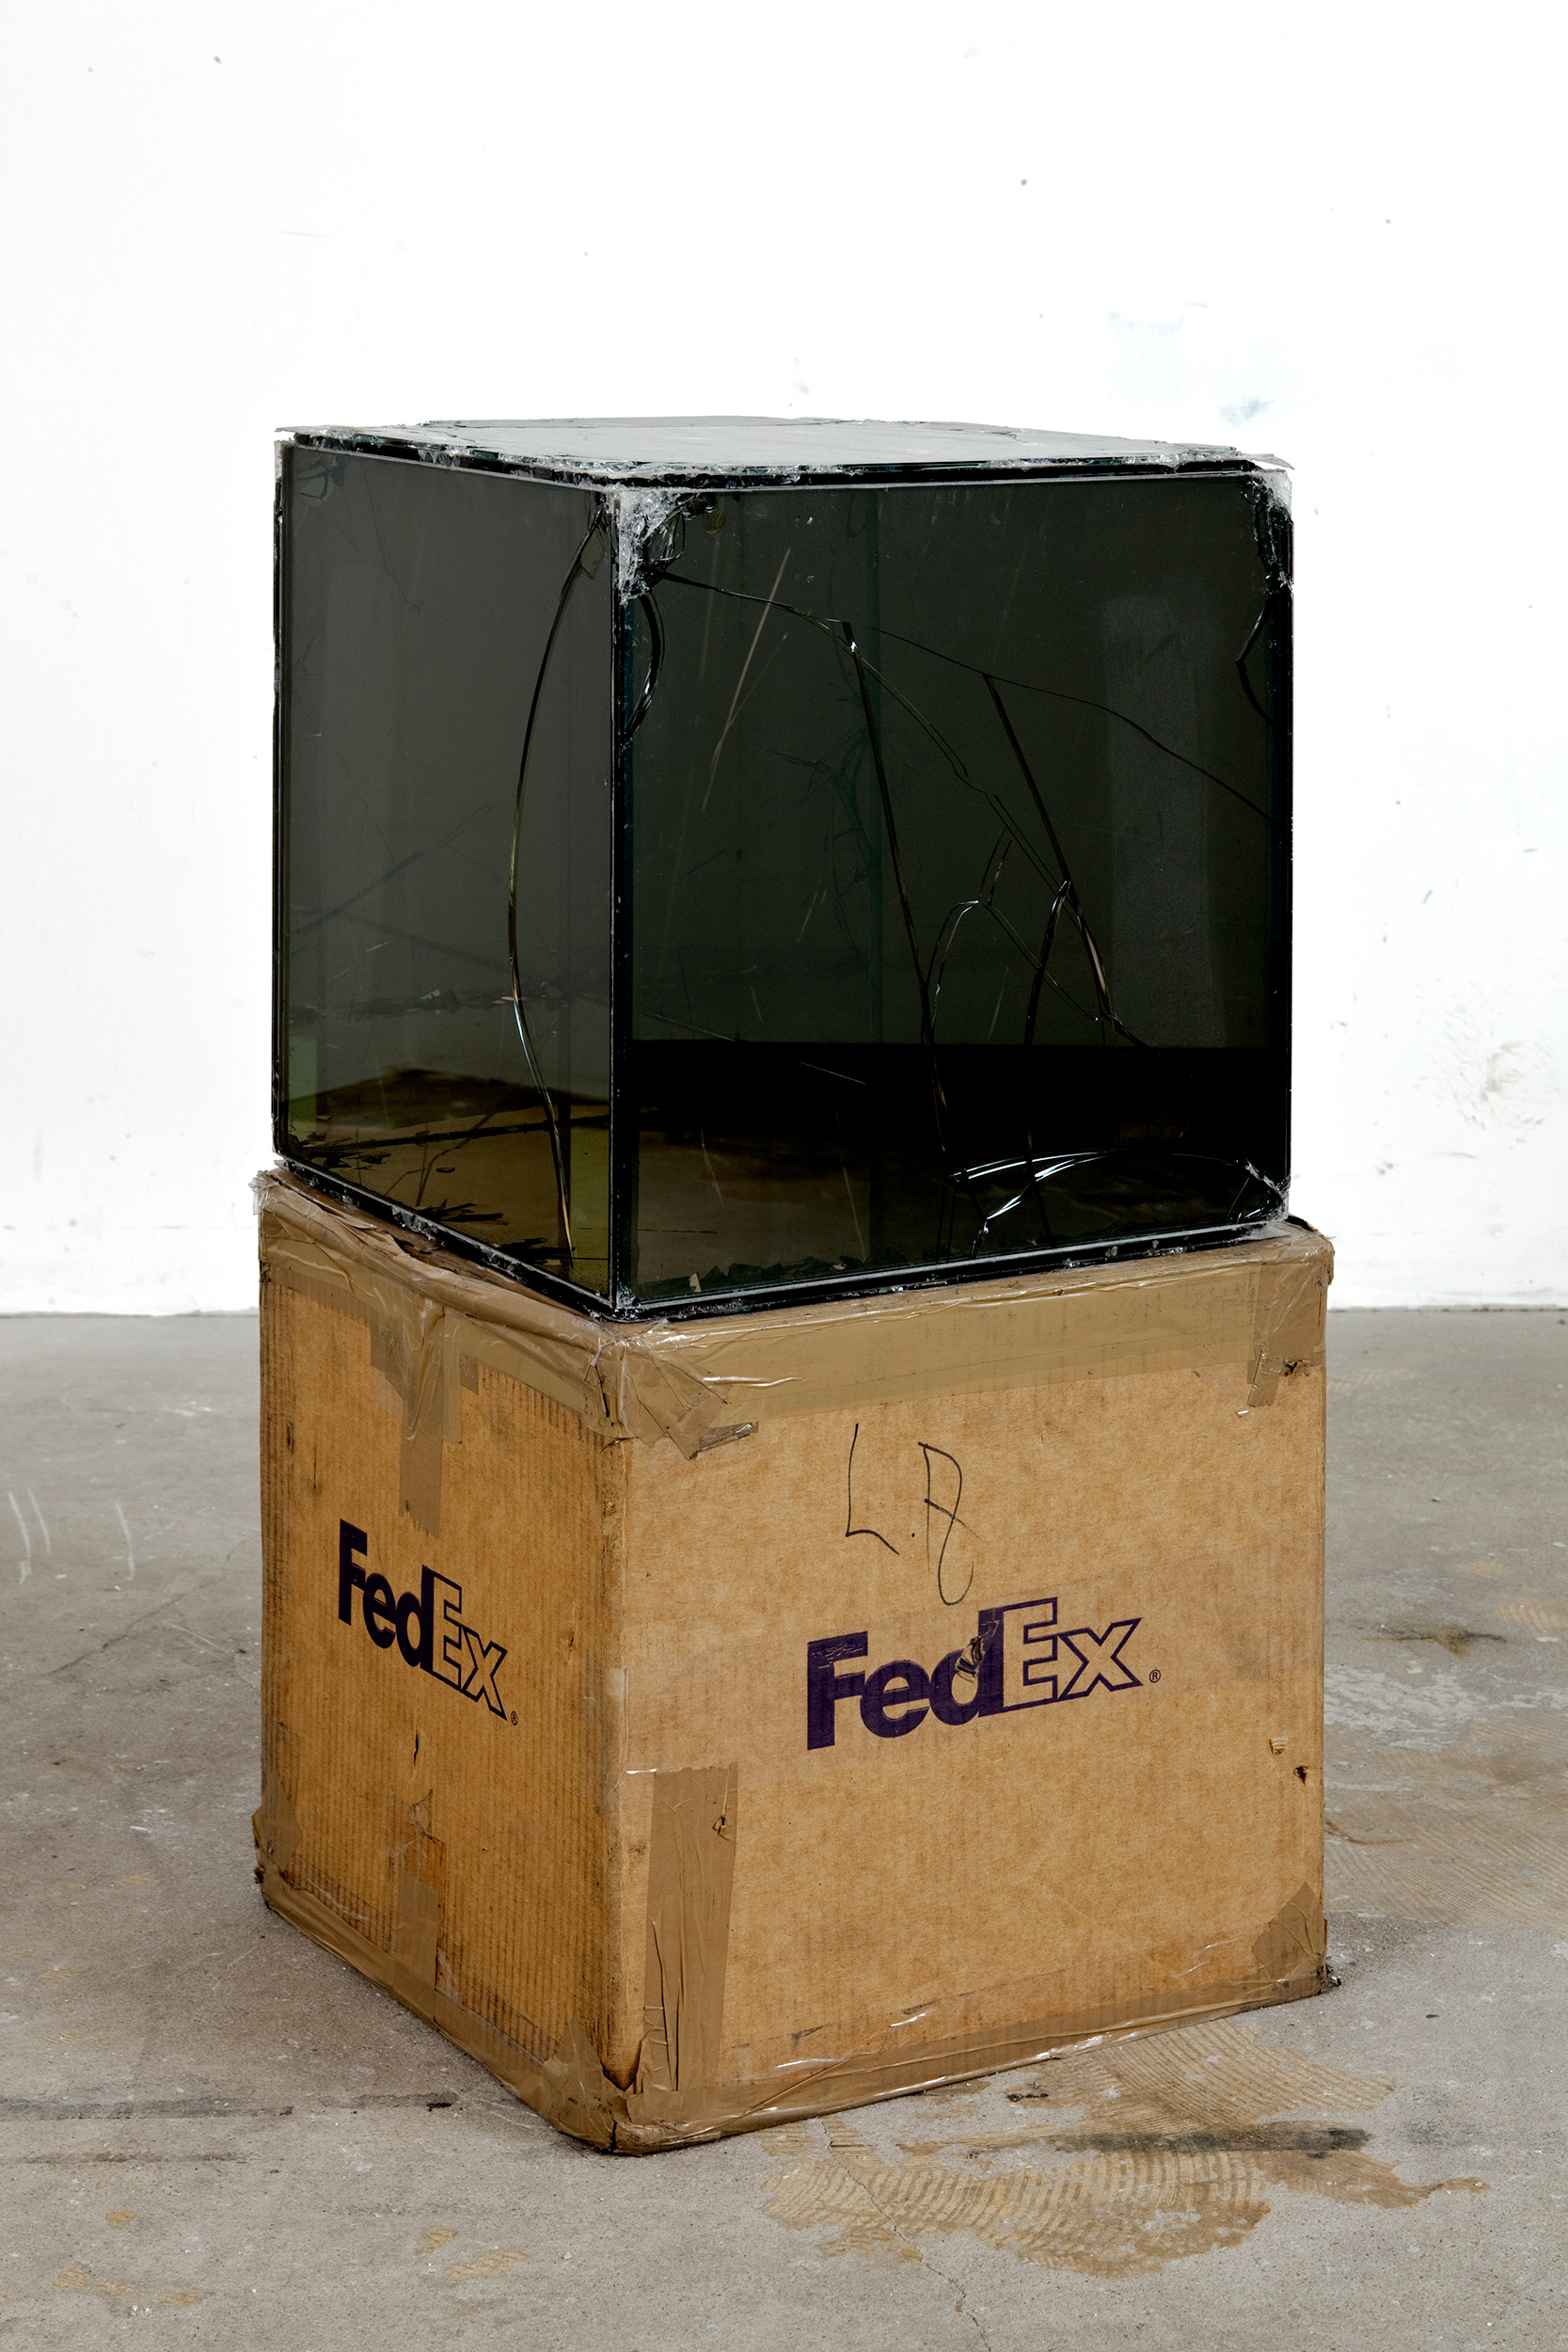 FedEx® Kraft Box  © 2005 FEDEX 330504 10/05 SSCC, Priority Overnight, Los Angeles–Miami trk#865344981314, October 29–30, 2008, Priority Overnight, Miami–Los Angeles trk#861049125089, November 17–18, 2008, Priority Overnight, Los Angeles-Miami Beach trk#860147611241, December 01–02, 2008, Priority Overnight, Miami–Los Angeles trk#867525901310, December 08–09, 2008, Priority Overnight, Los Angeles–Ann Arbor trk#867525901228, March 09–10, 2009, Standard Overnight, Ann Arbor–Los Angeles trk#868274625705, July 09–10, 2009, Standard Overnight, Los Angeles–San Francisco trk#870069766460, August 27–28, 2009, Standard Overnight, San Francisco–Los Angeles trk#870342520112, November 12–13, 2009    2008   Laminated Mirropane, FedEx shipping box, accrued FedEx shipping and tracking labels, silicone, metal, and tape  16 x 16 x 16 inches   FedEx Glass Works, 2007–